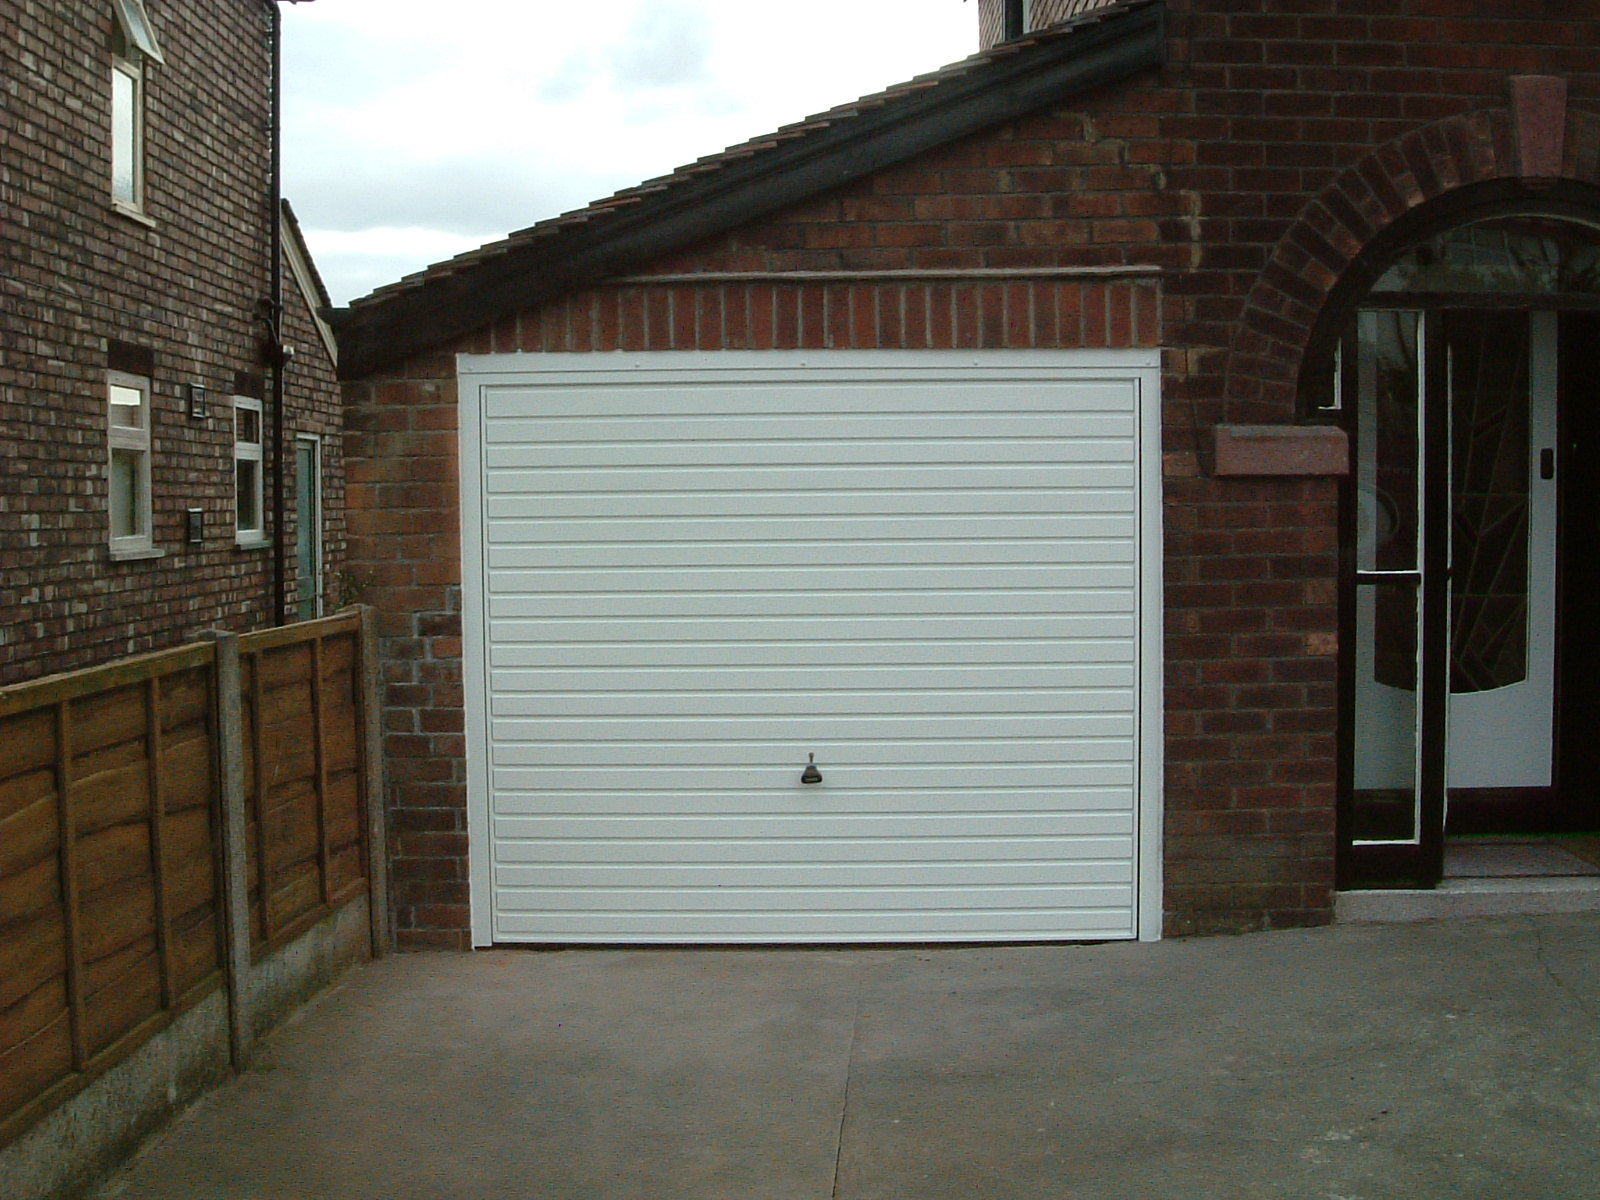 1200 #332B20 Horizontal Ribbed Garage Door pic Horizontal Garage Doors 37811600